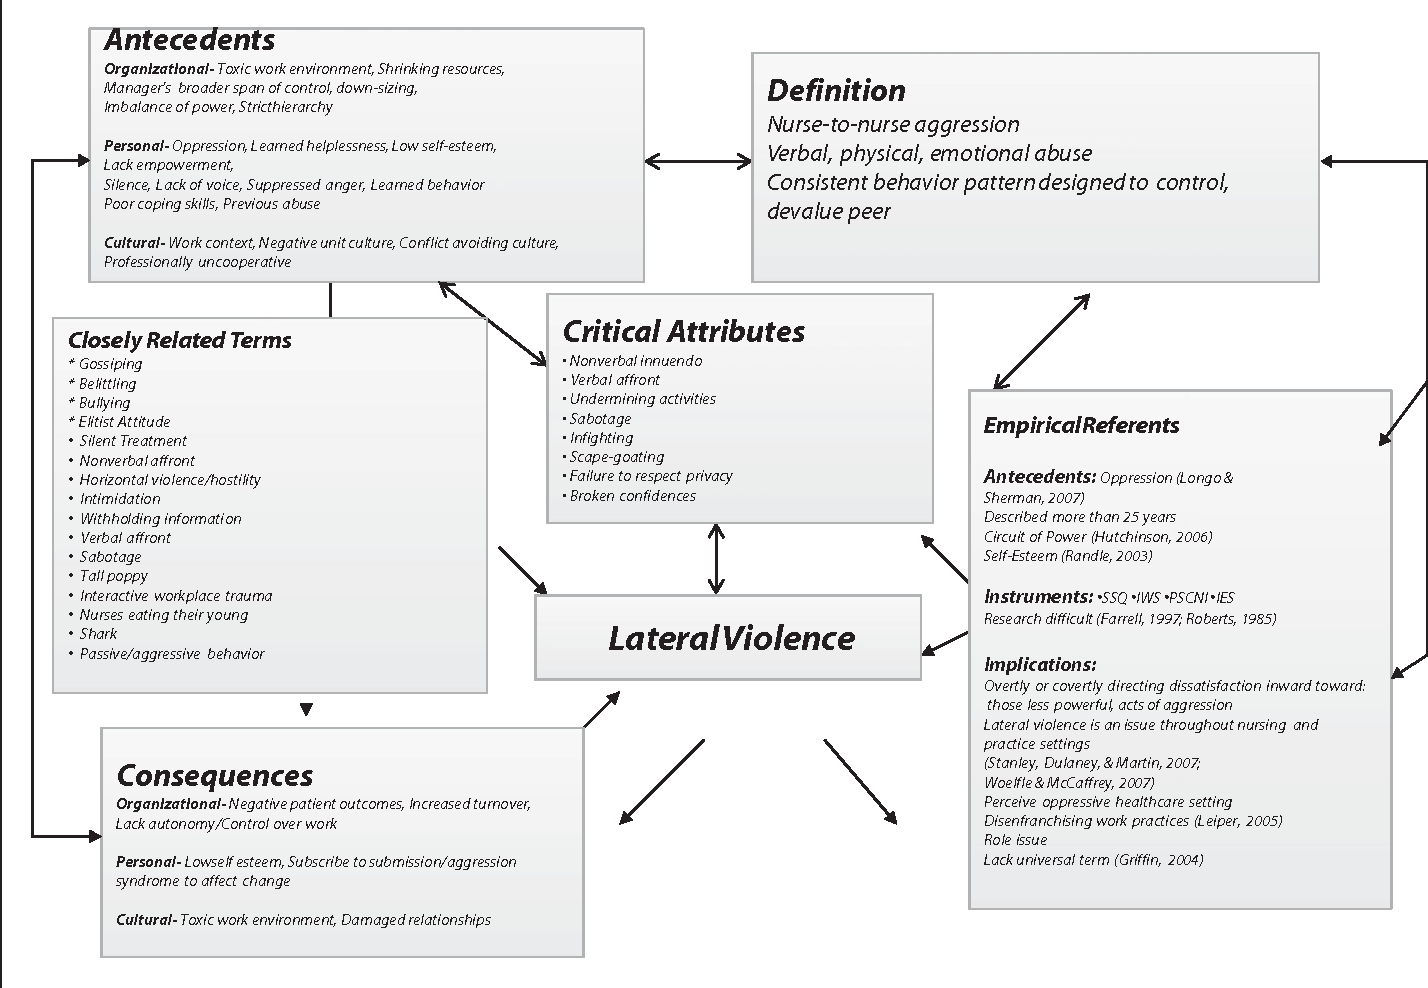 Concept Map Nursing Figure 1 from Concept analysis: nurse to nurse lateral violence